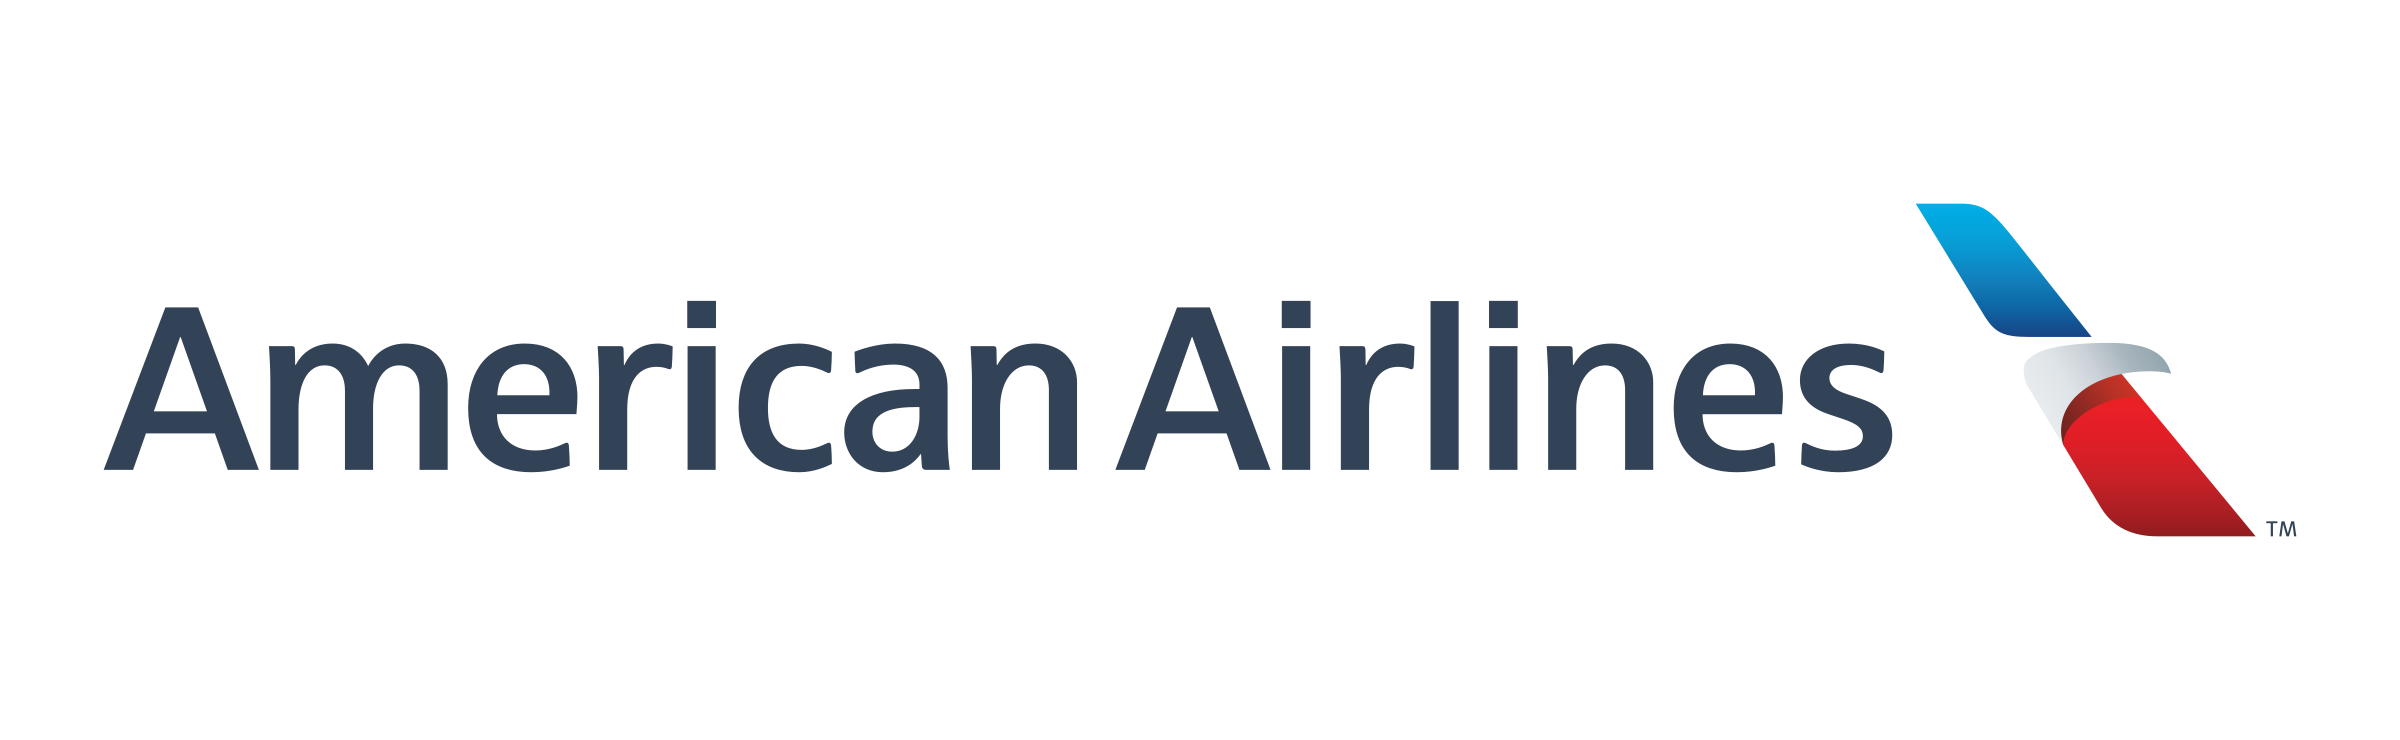 american-airlines-logo-png-transparent